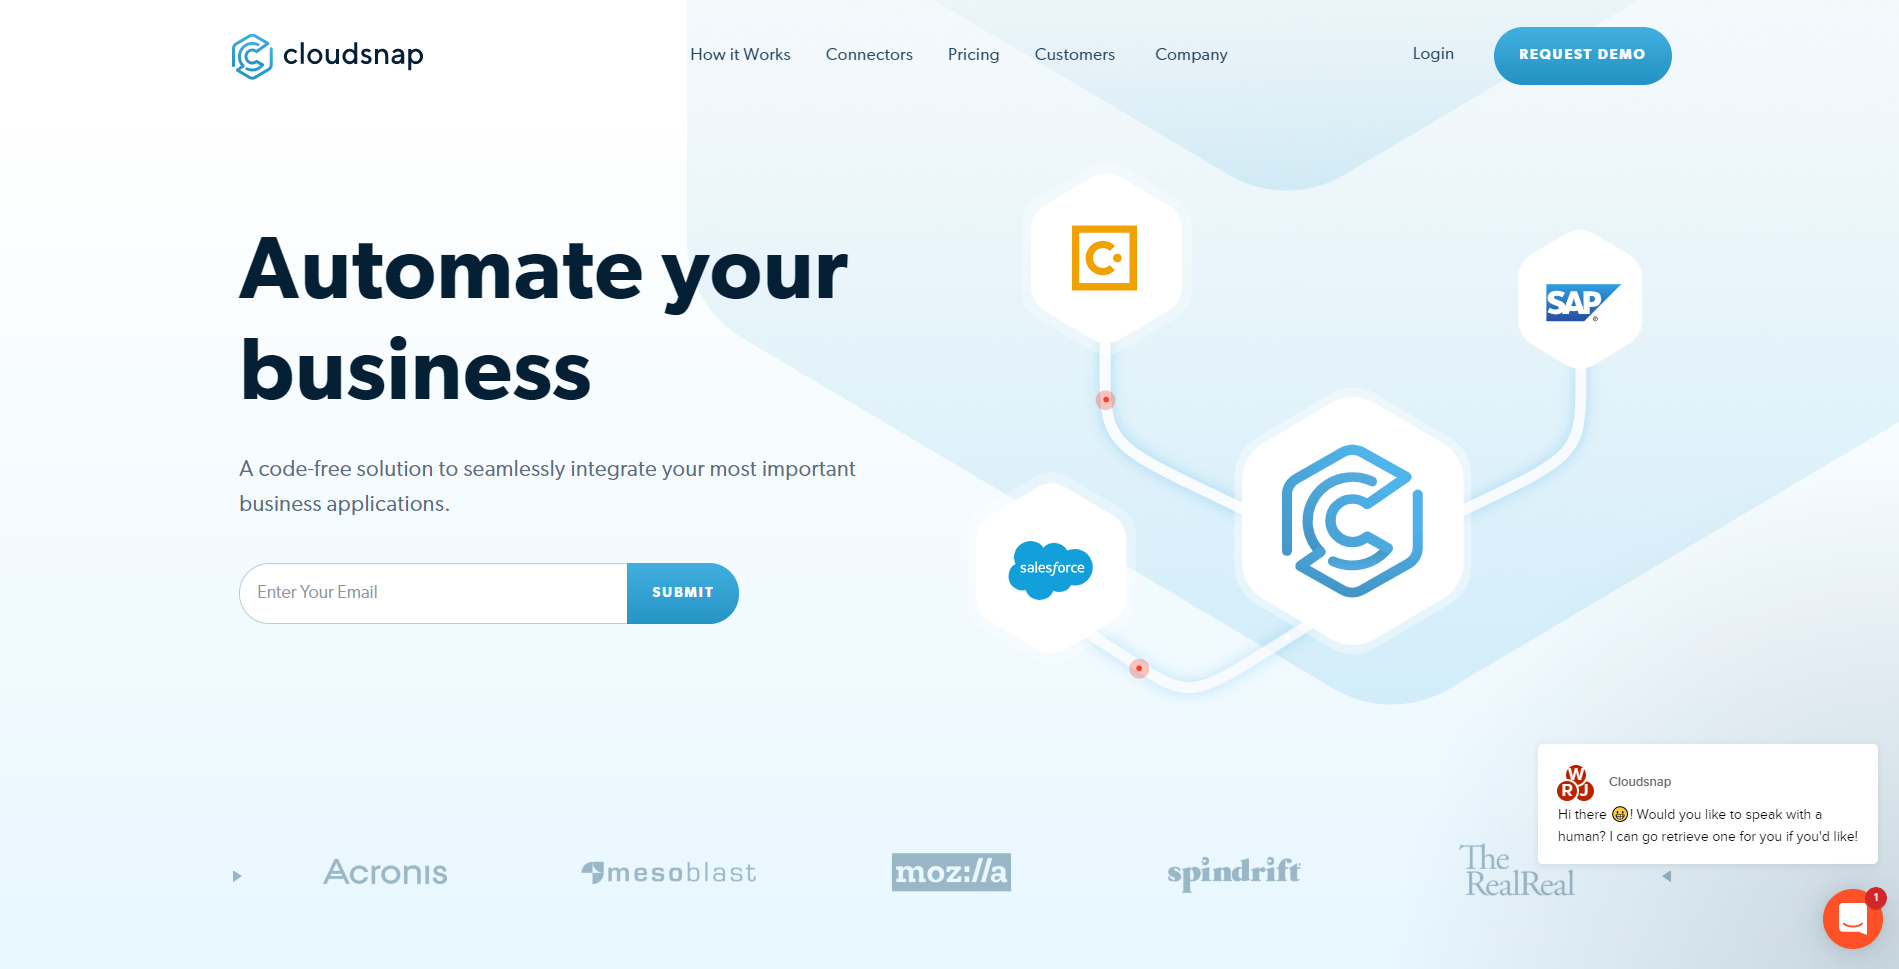 Cloudsnap Hires Former Rackspace Executive as CEO, Lands $1.8M from Active Capital to Fund Growth